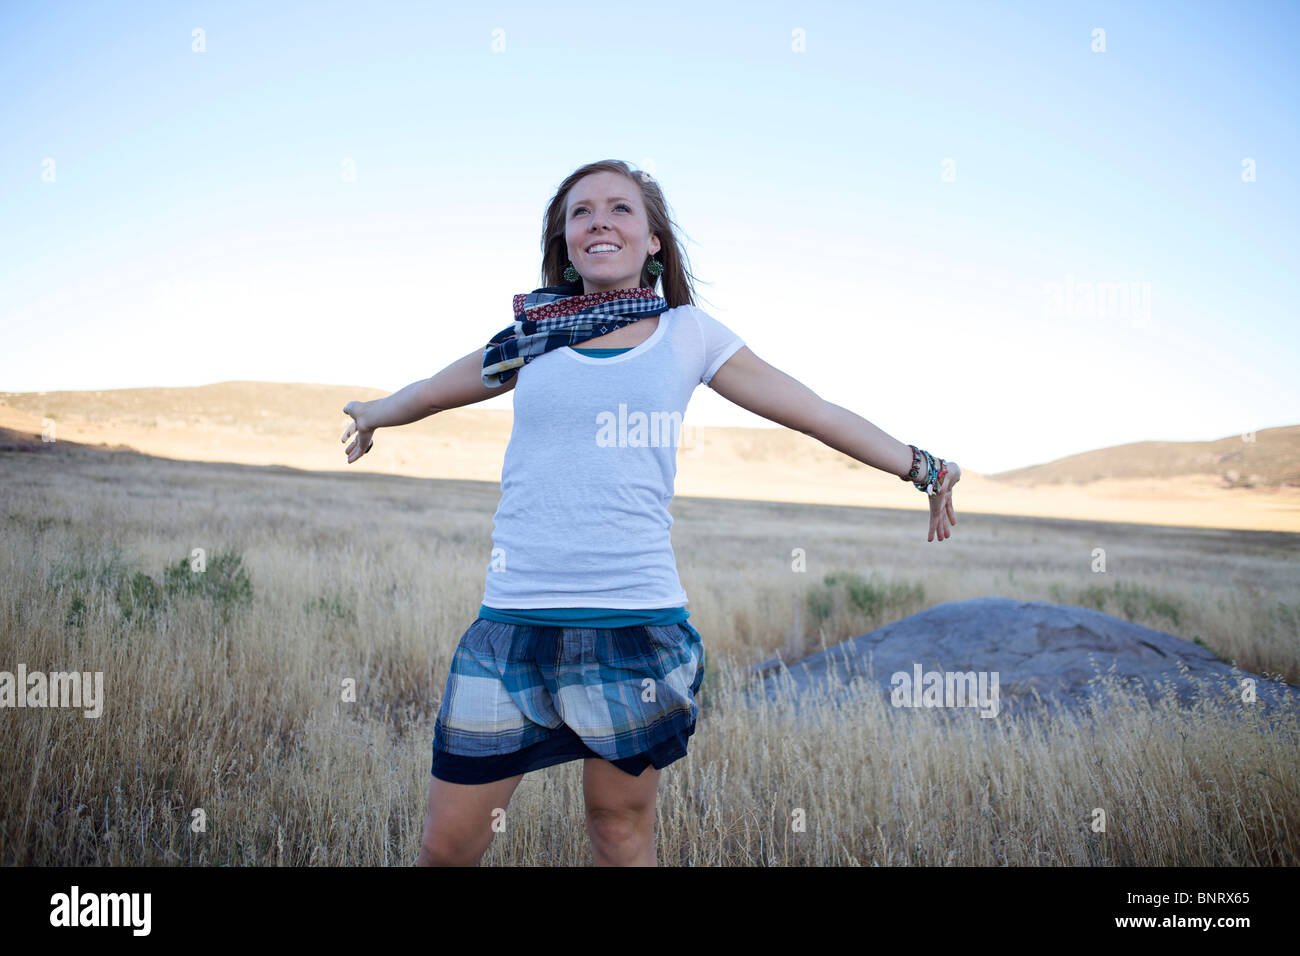 Young lady in an open field opens her arms to feel the wind. - Stock Image